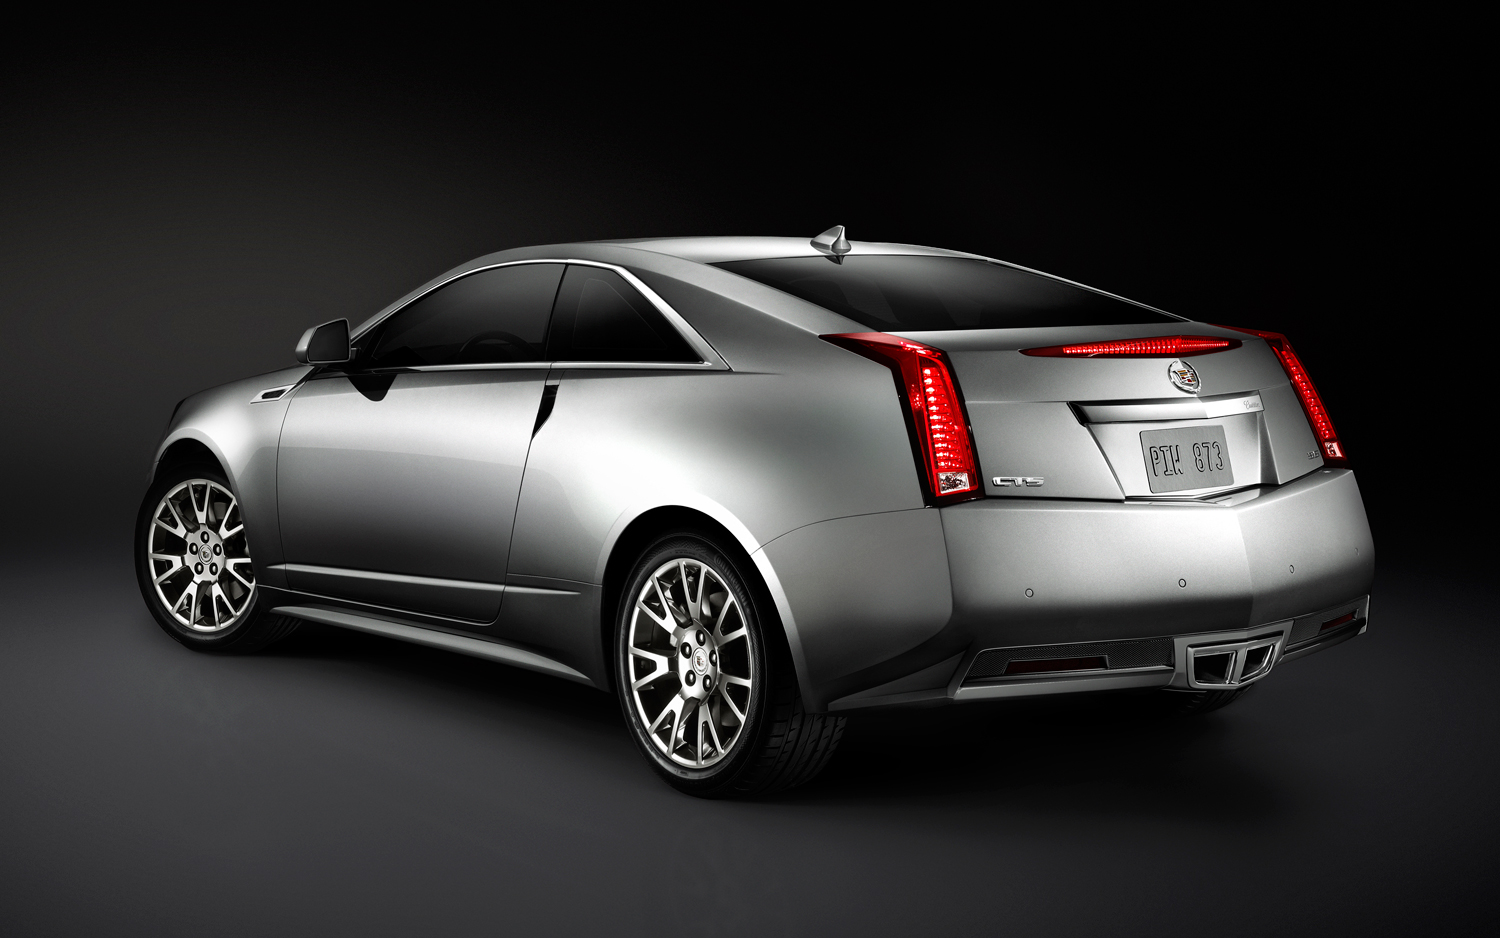 2012 Cadillac Cts Coupe #9